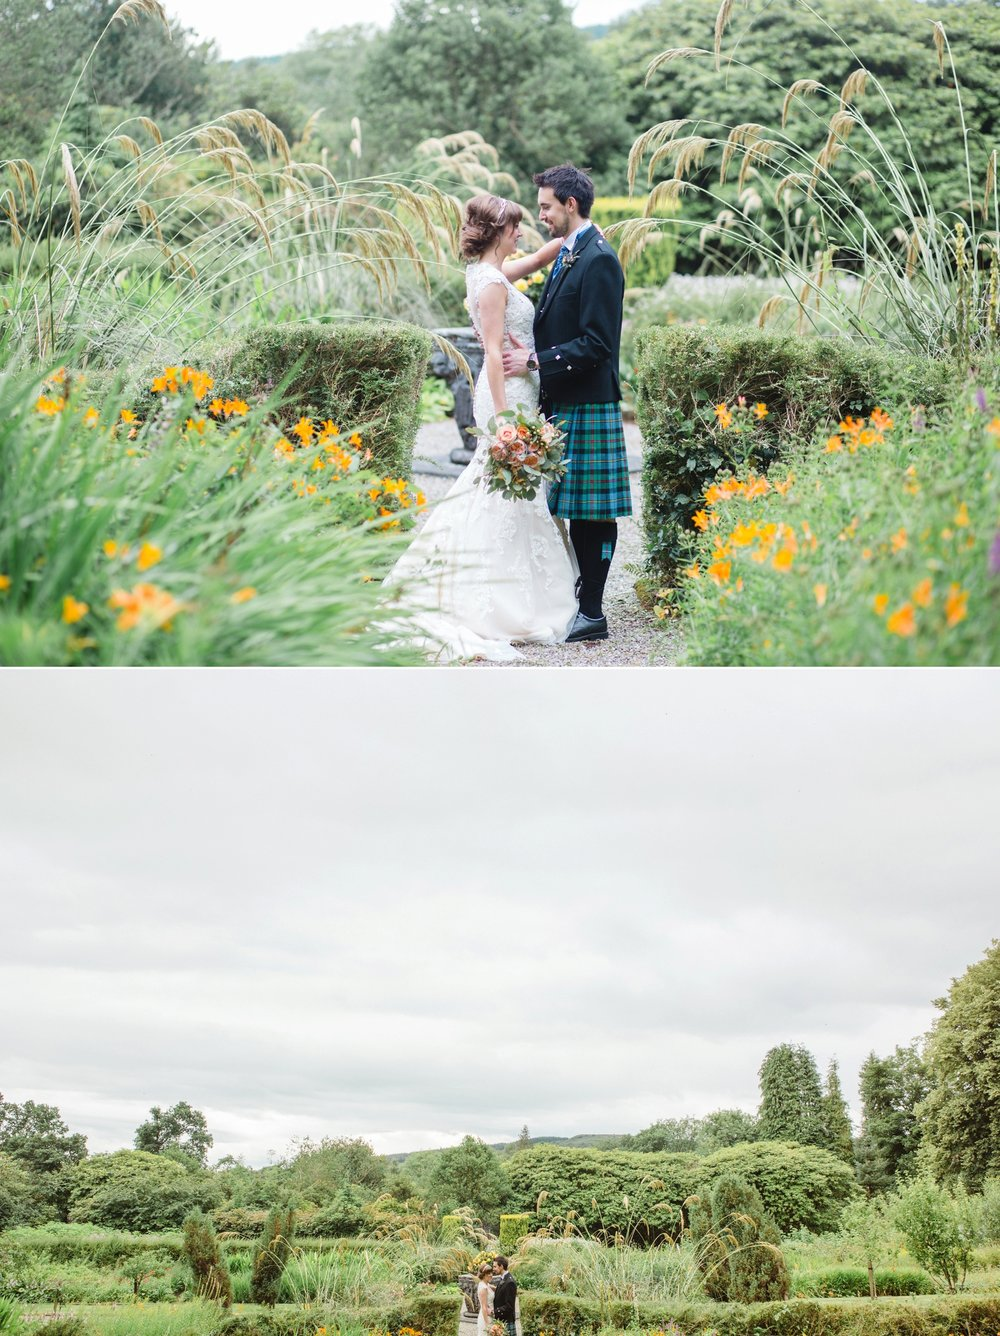 ScottishItalianRomanCampWedding23-5.jpg